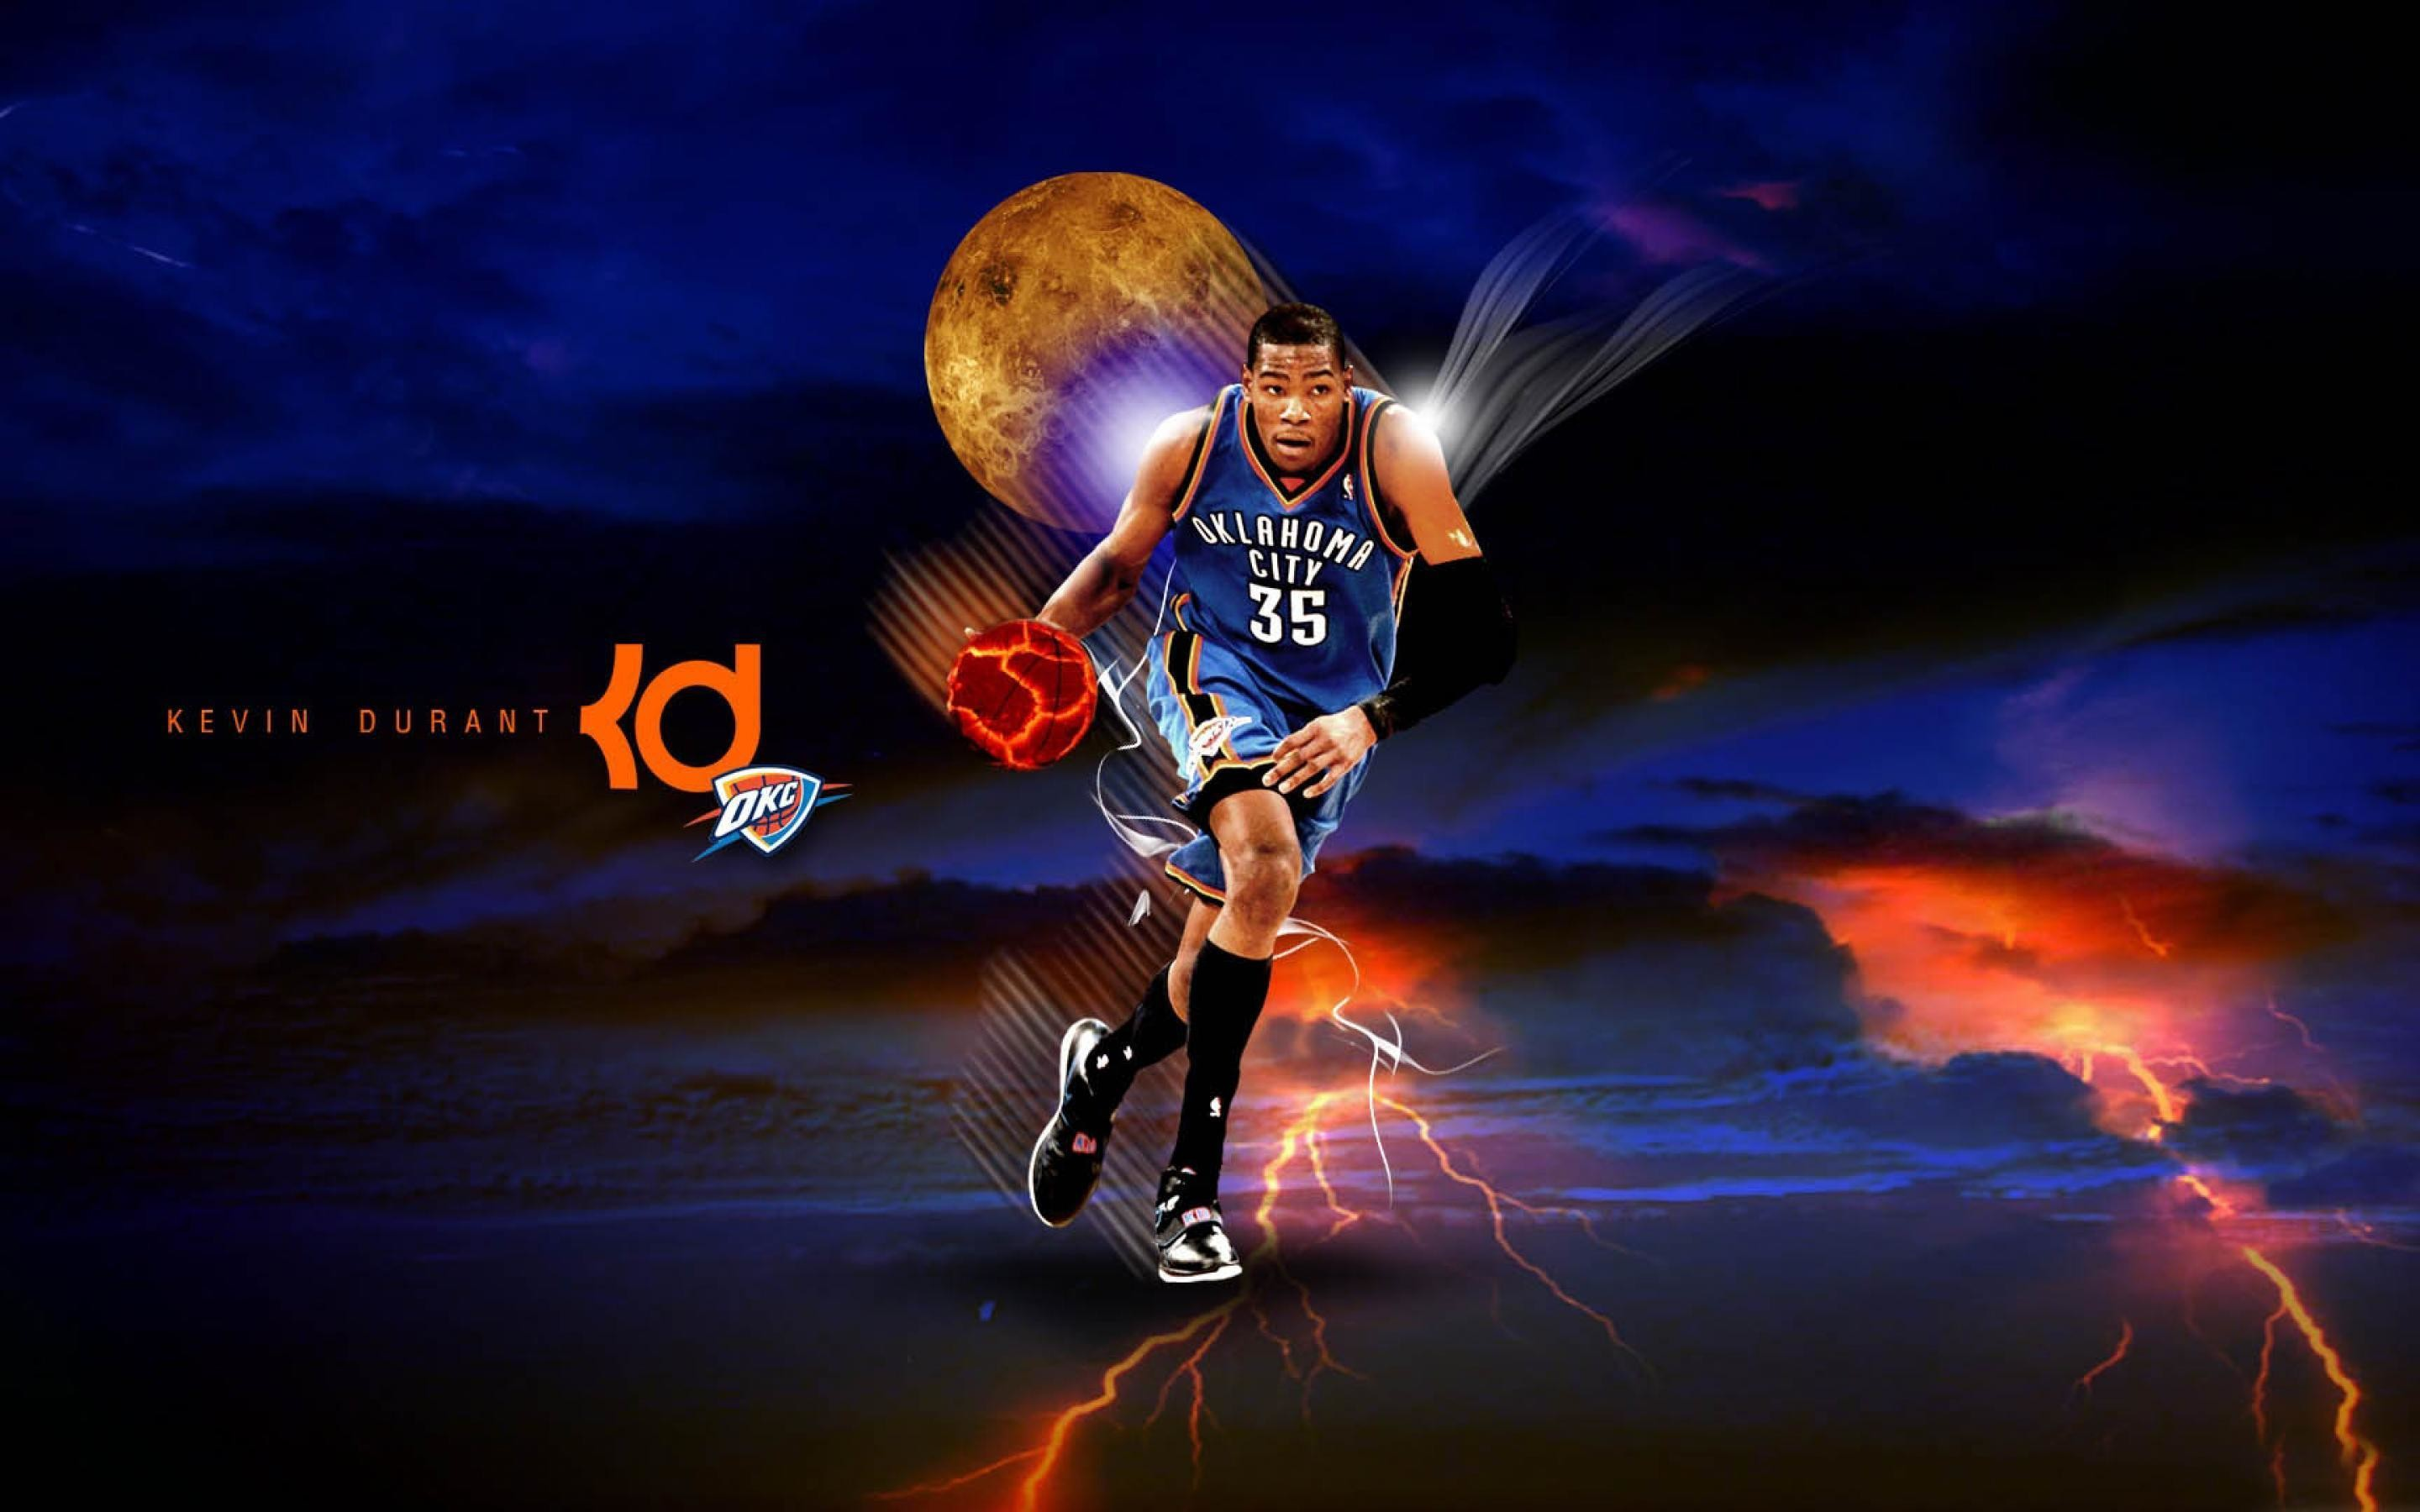 2880x1800 Kevin Durant Wallpapers 2015 HD - Wallpaper Cave